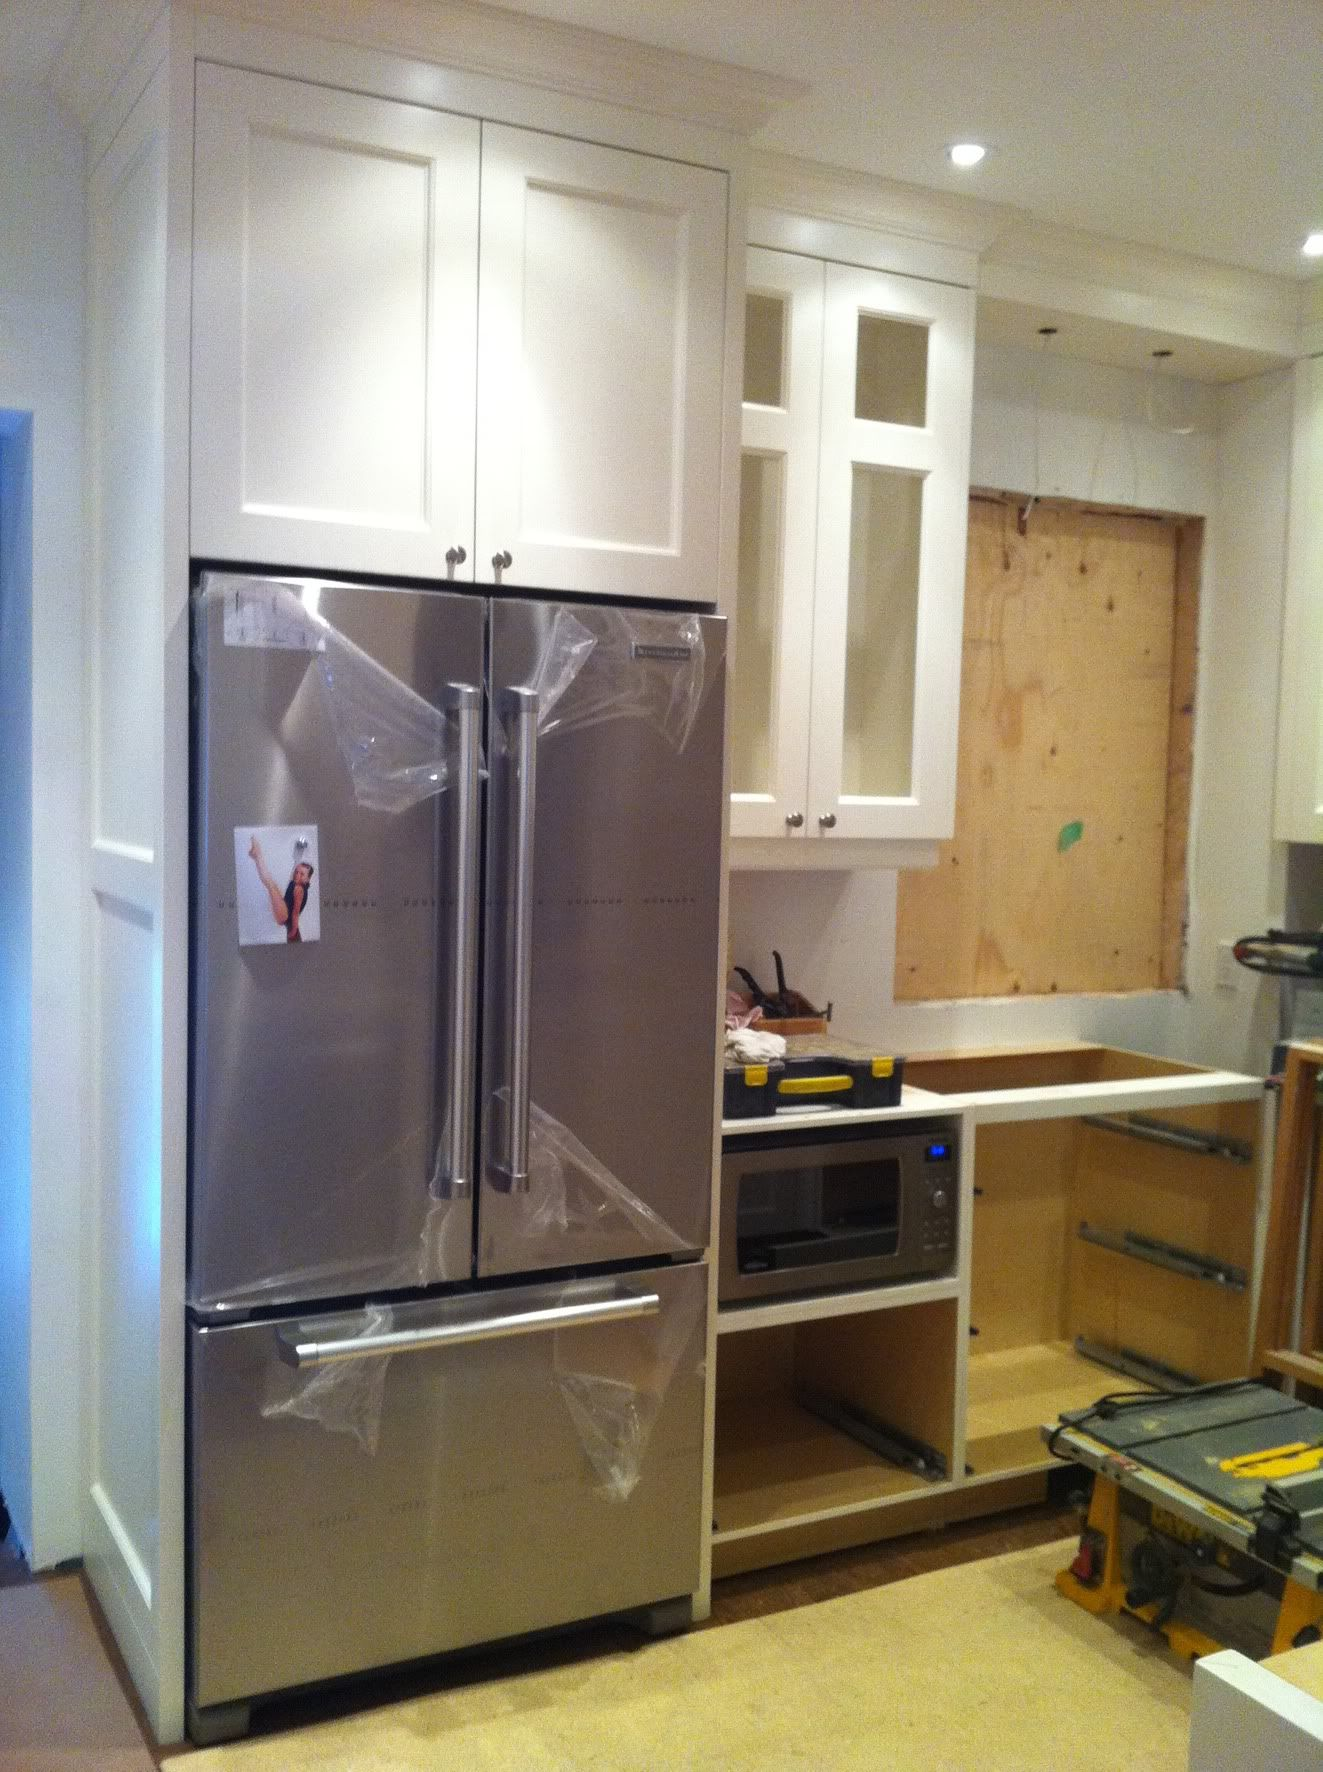 Kitchen Cabinets Around Fridge encapsulate refrigerator and bring countertops forward for a